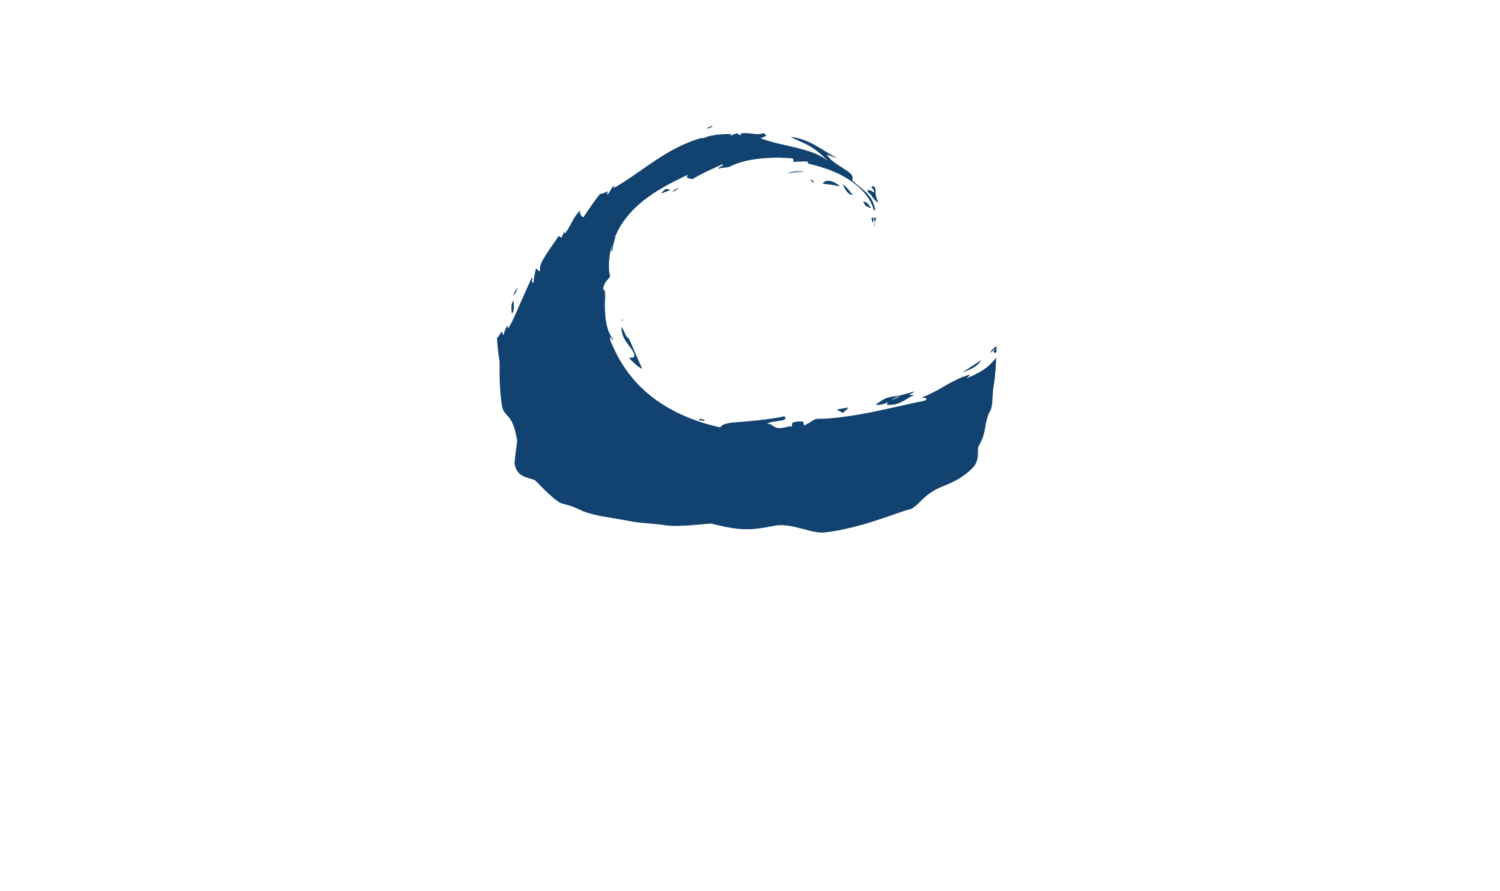 Deception Bay Tavern, Deception Bay, QLD